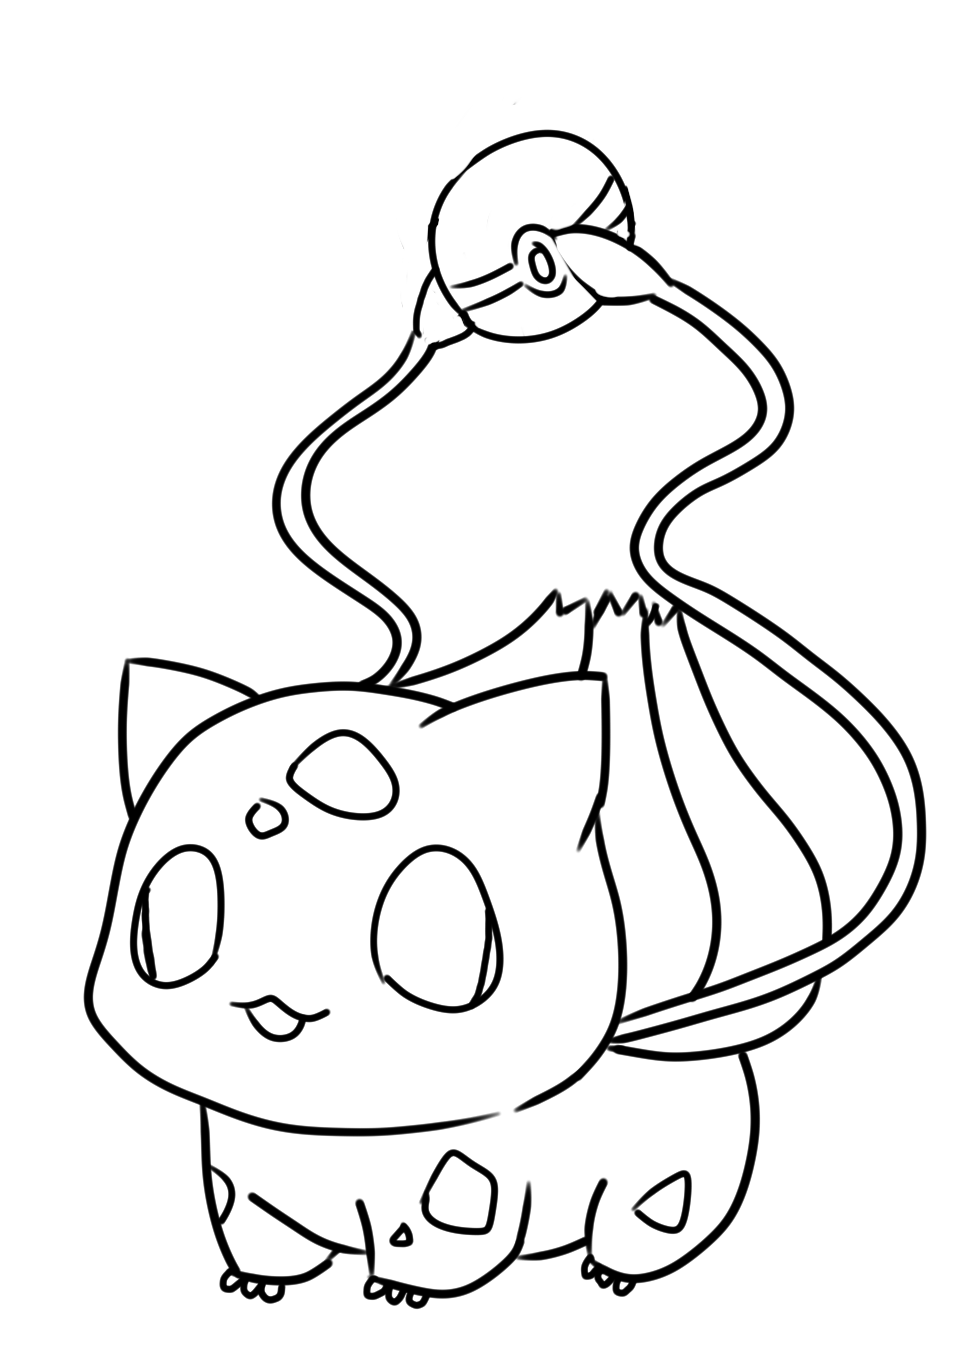 Kawaii Pokemon Bulbasaur Coloring Pages Pokemon Bulbasaur Coloring Pages Pokemon Coloring